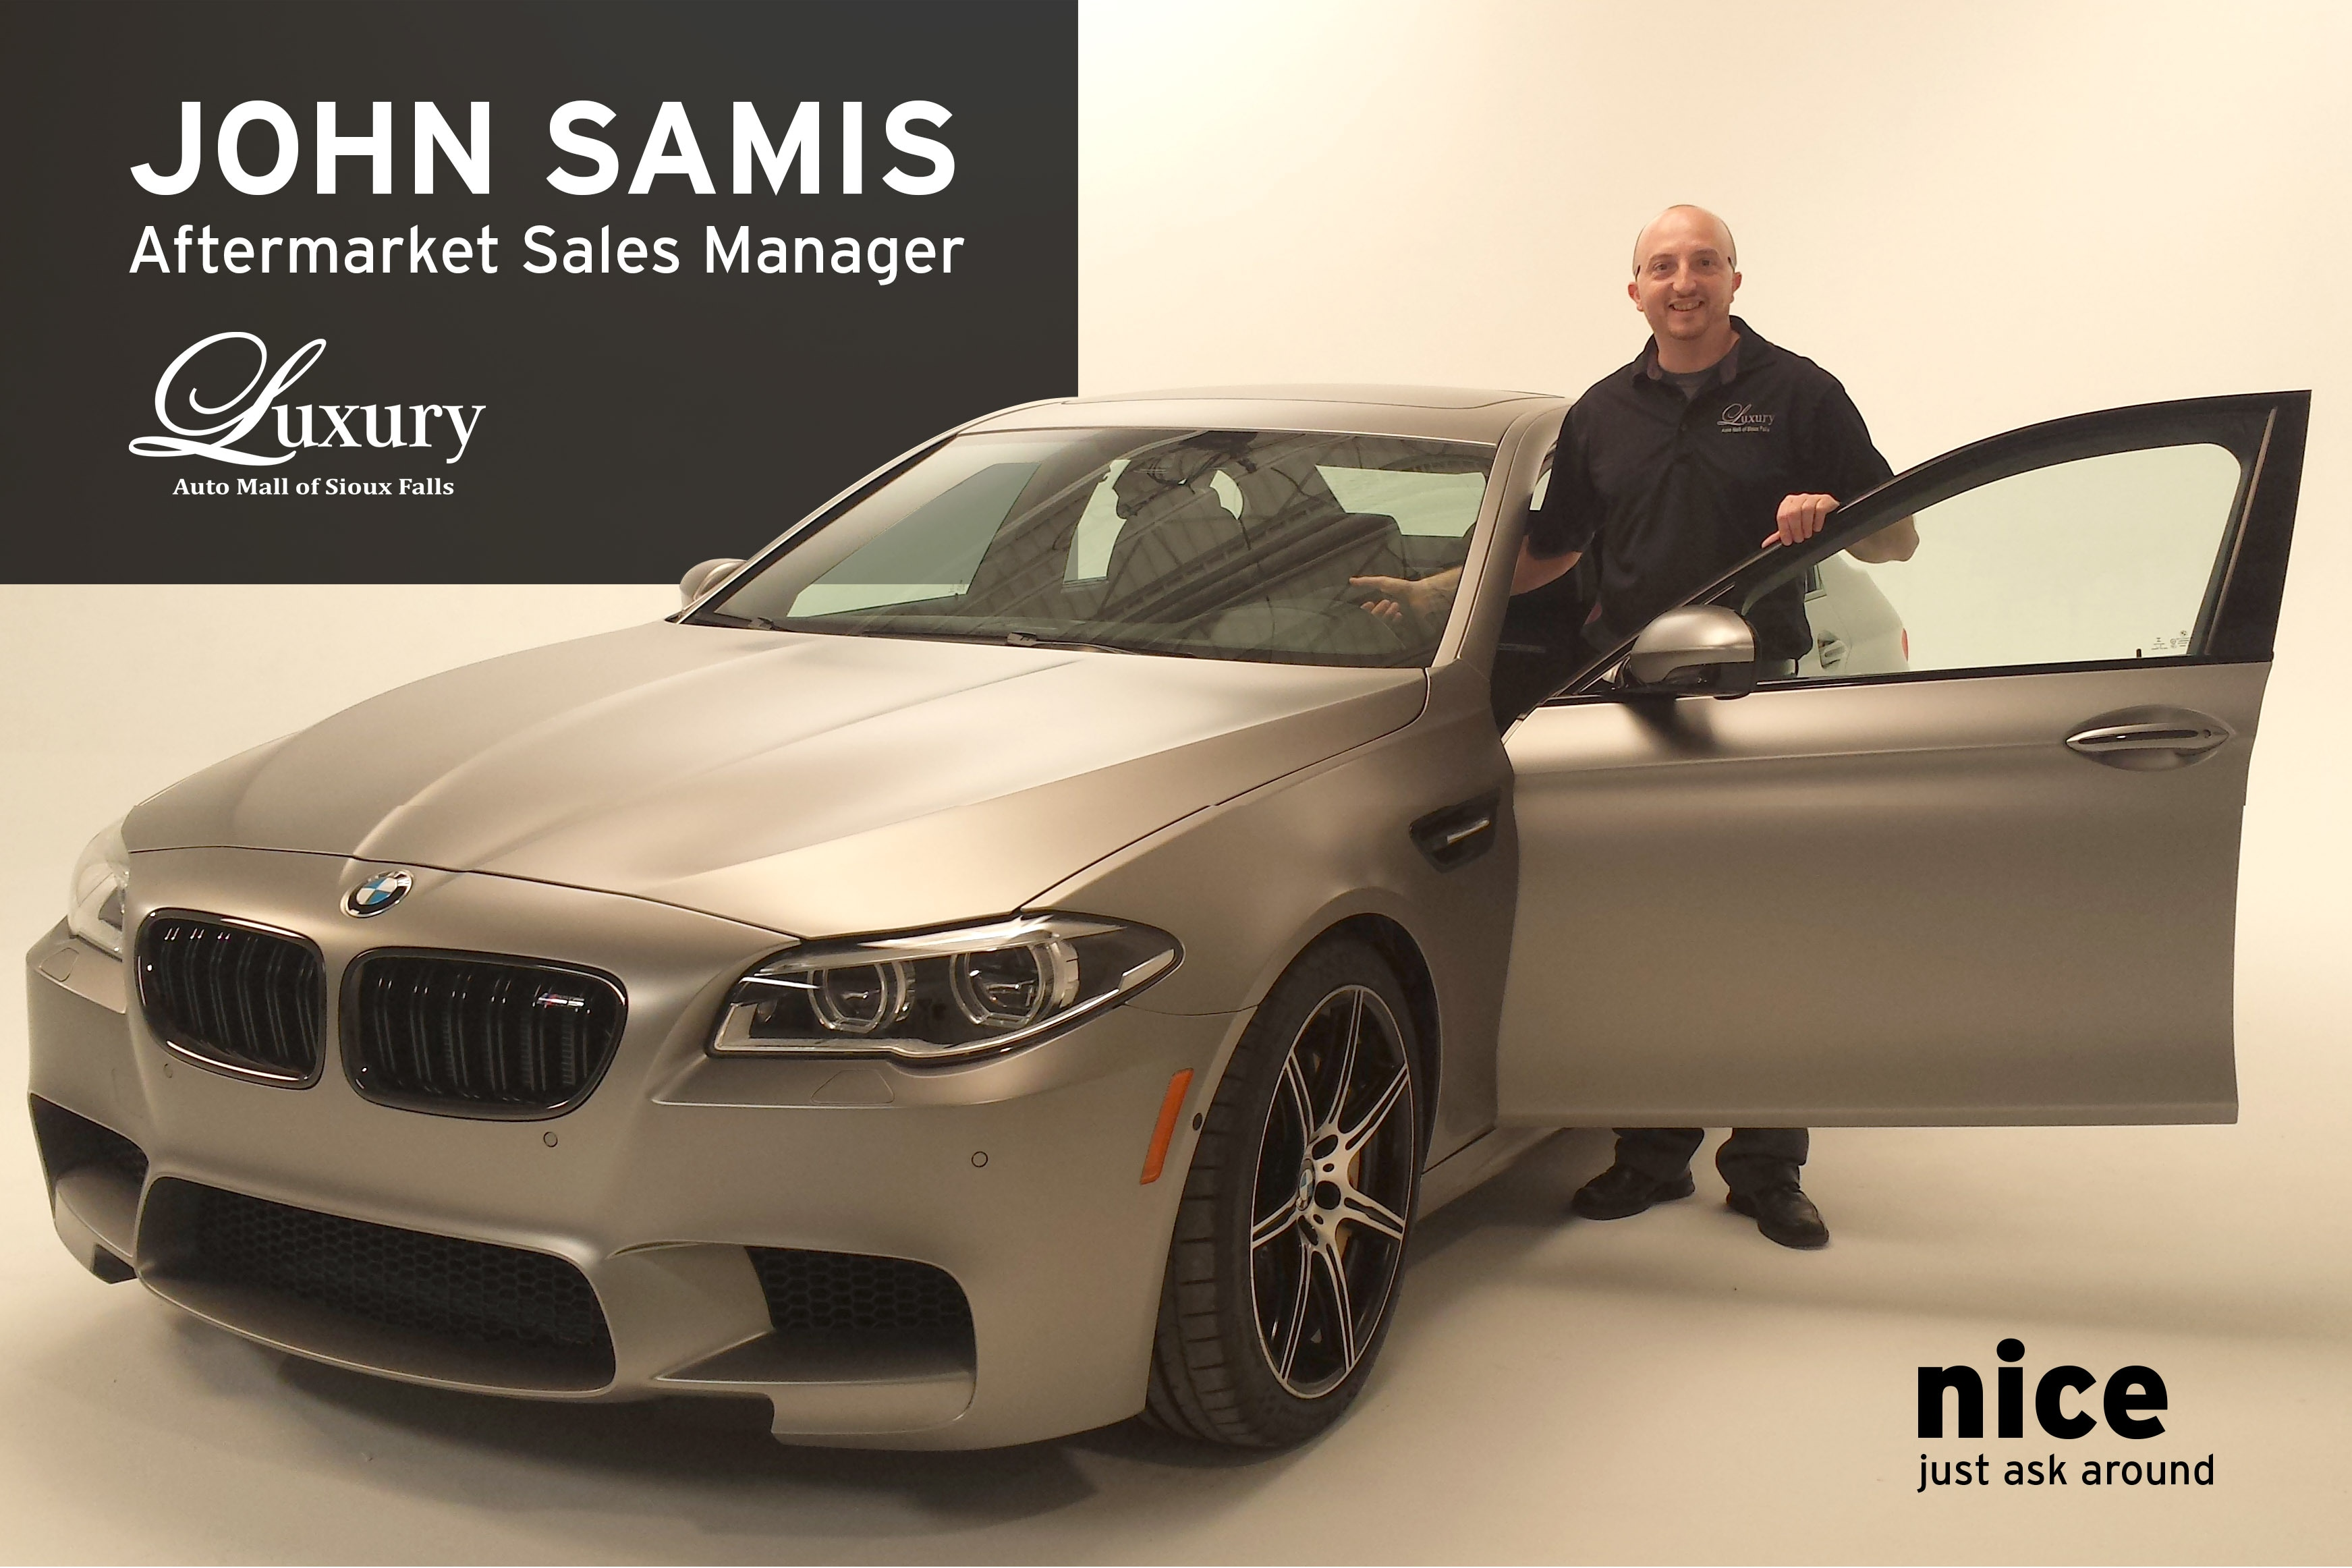 Meet Us Monday: John Samis, Aftermarket Sales Manager at the